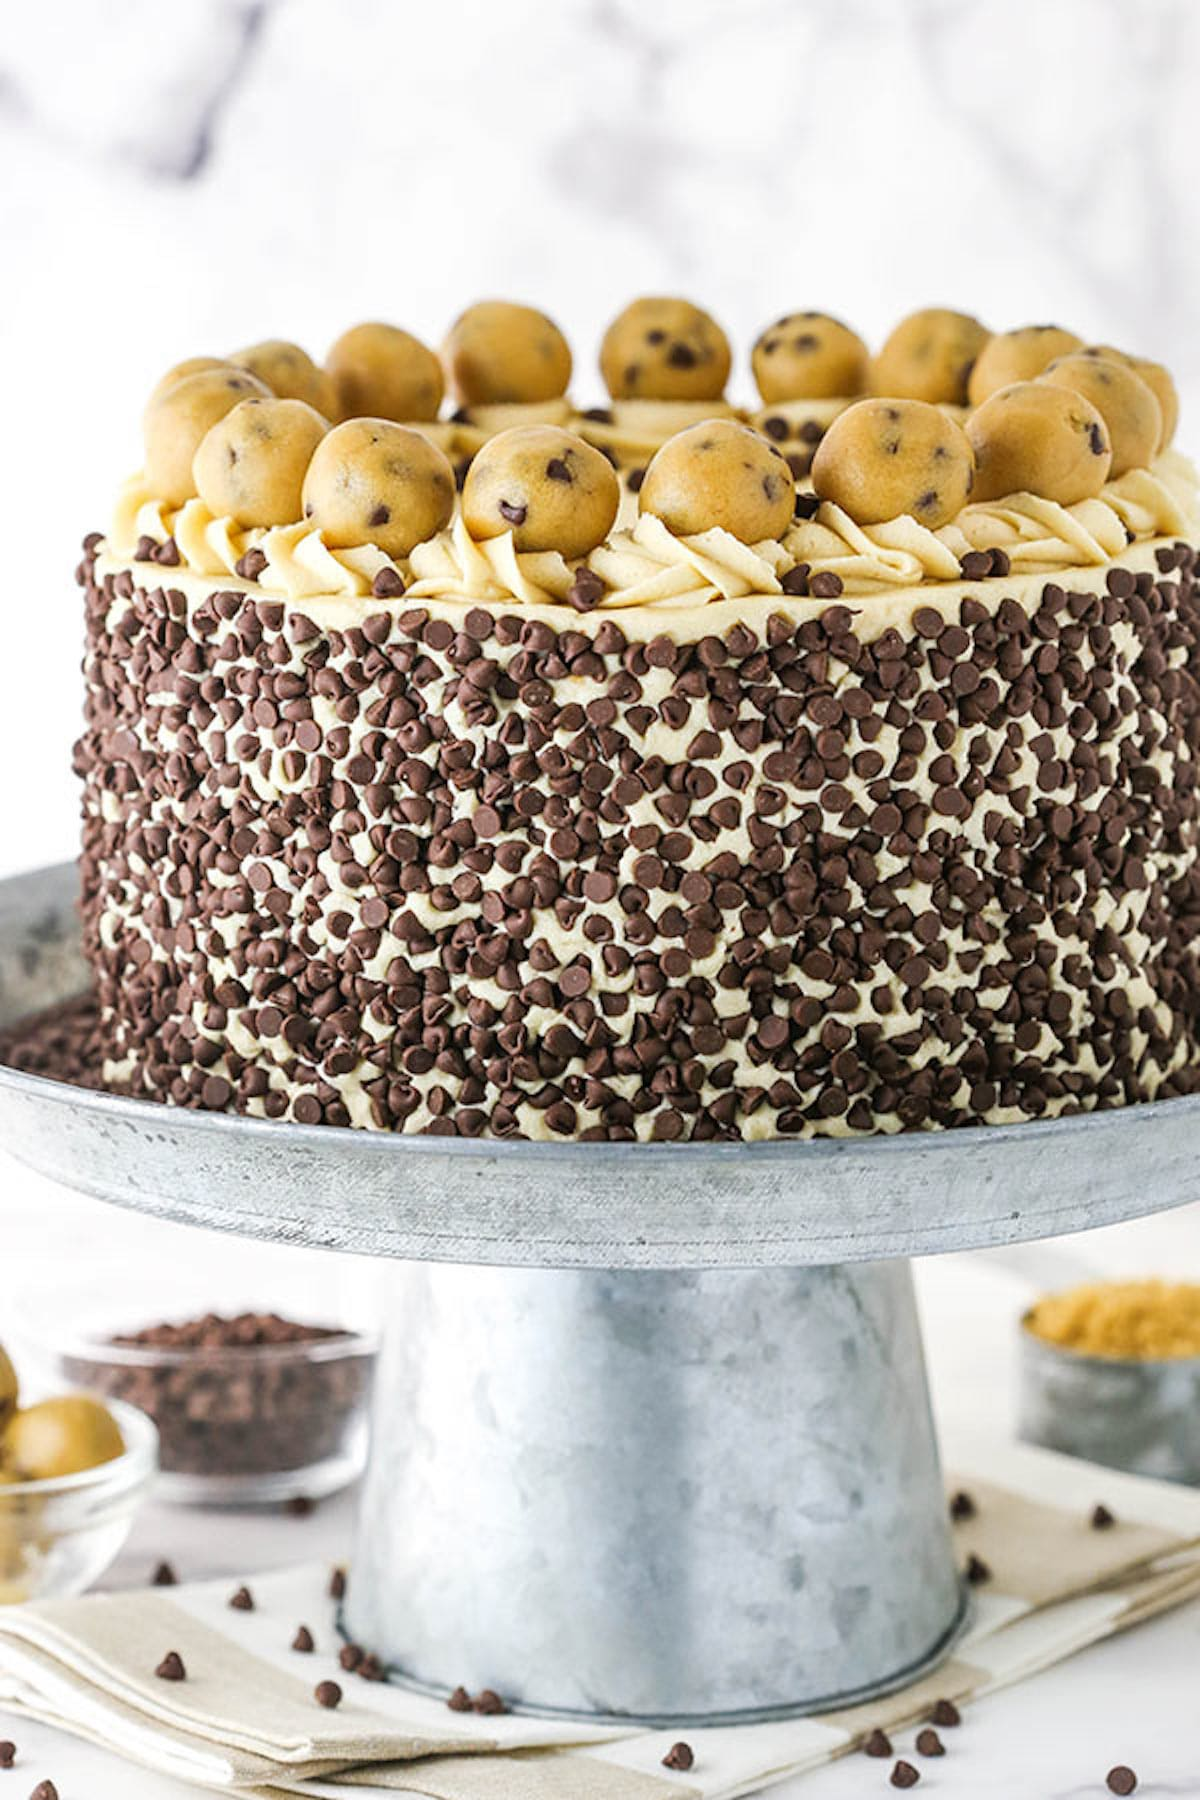 A Chocolate Chip Layer Cake on Top of a Metal Cake Stand